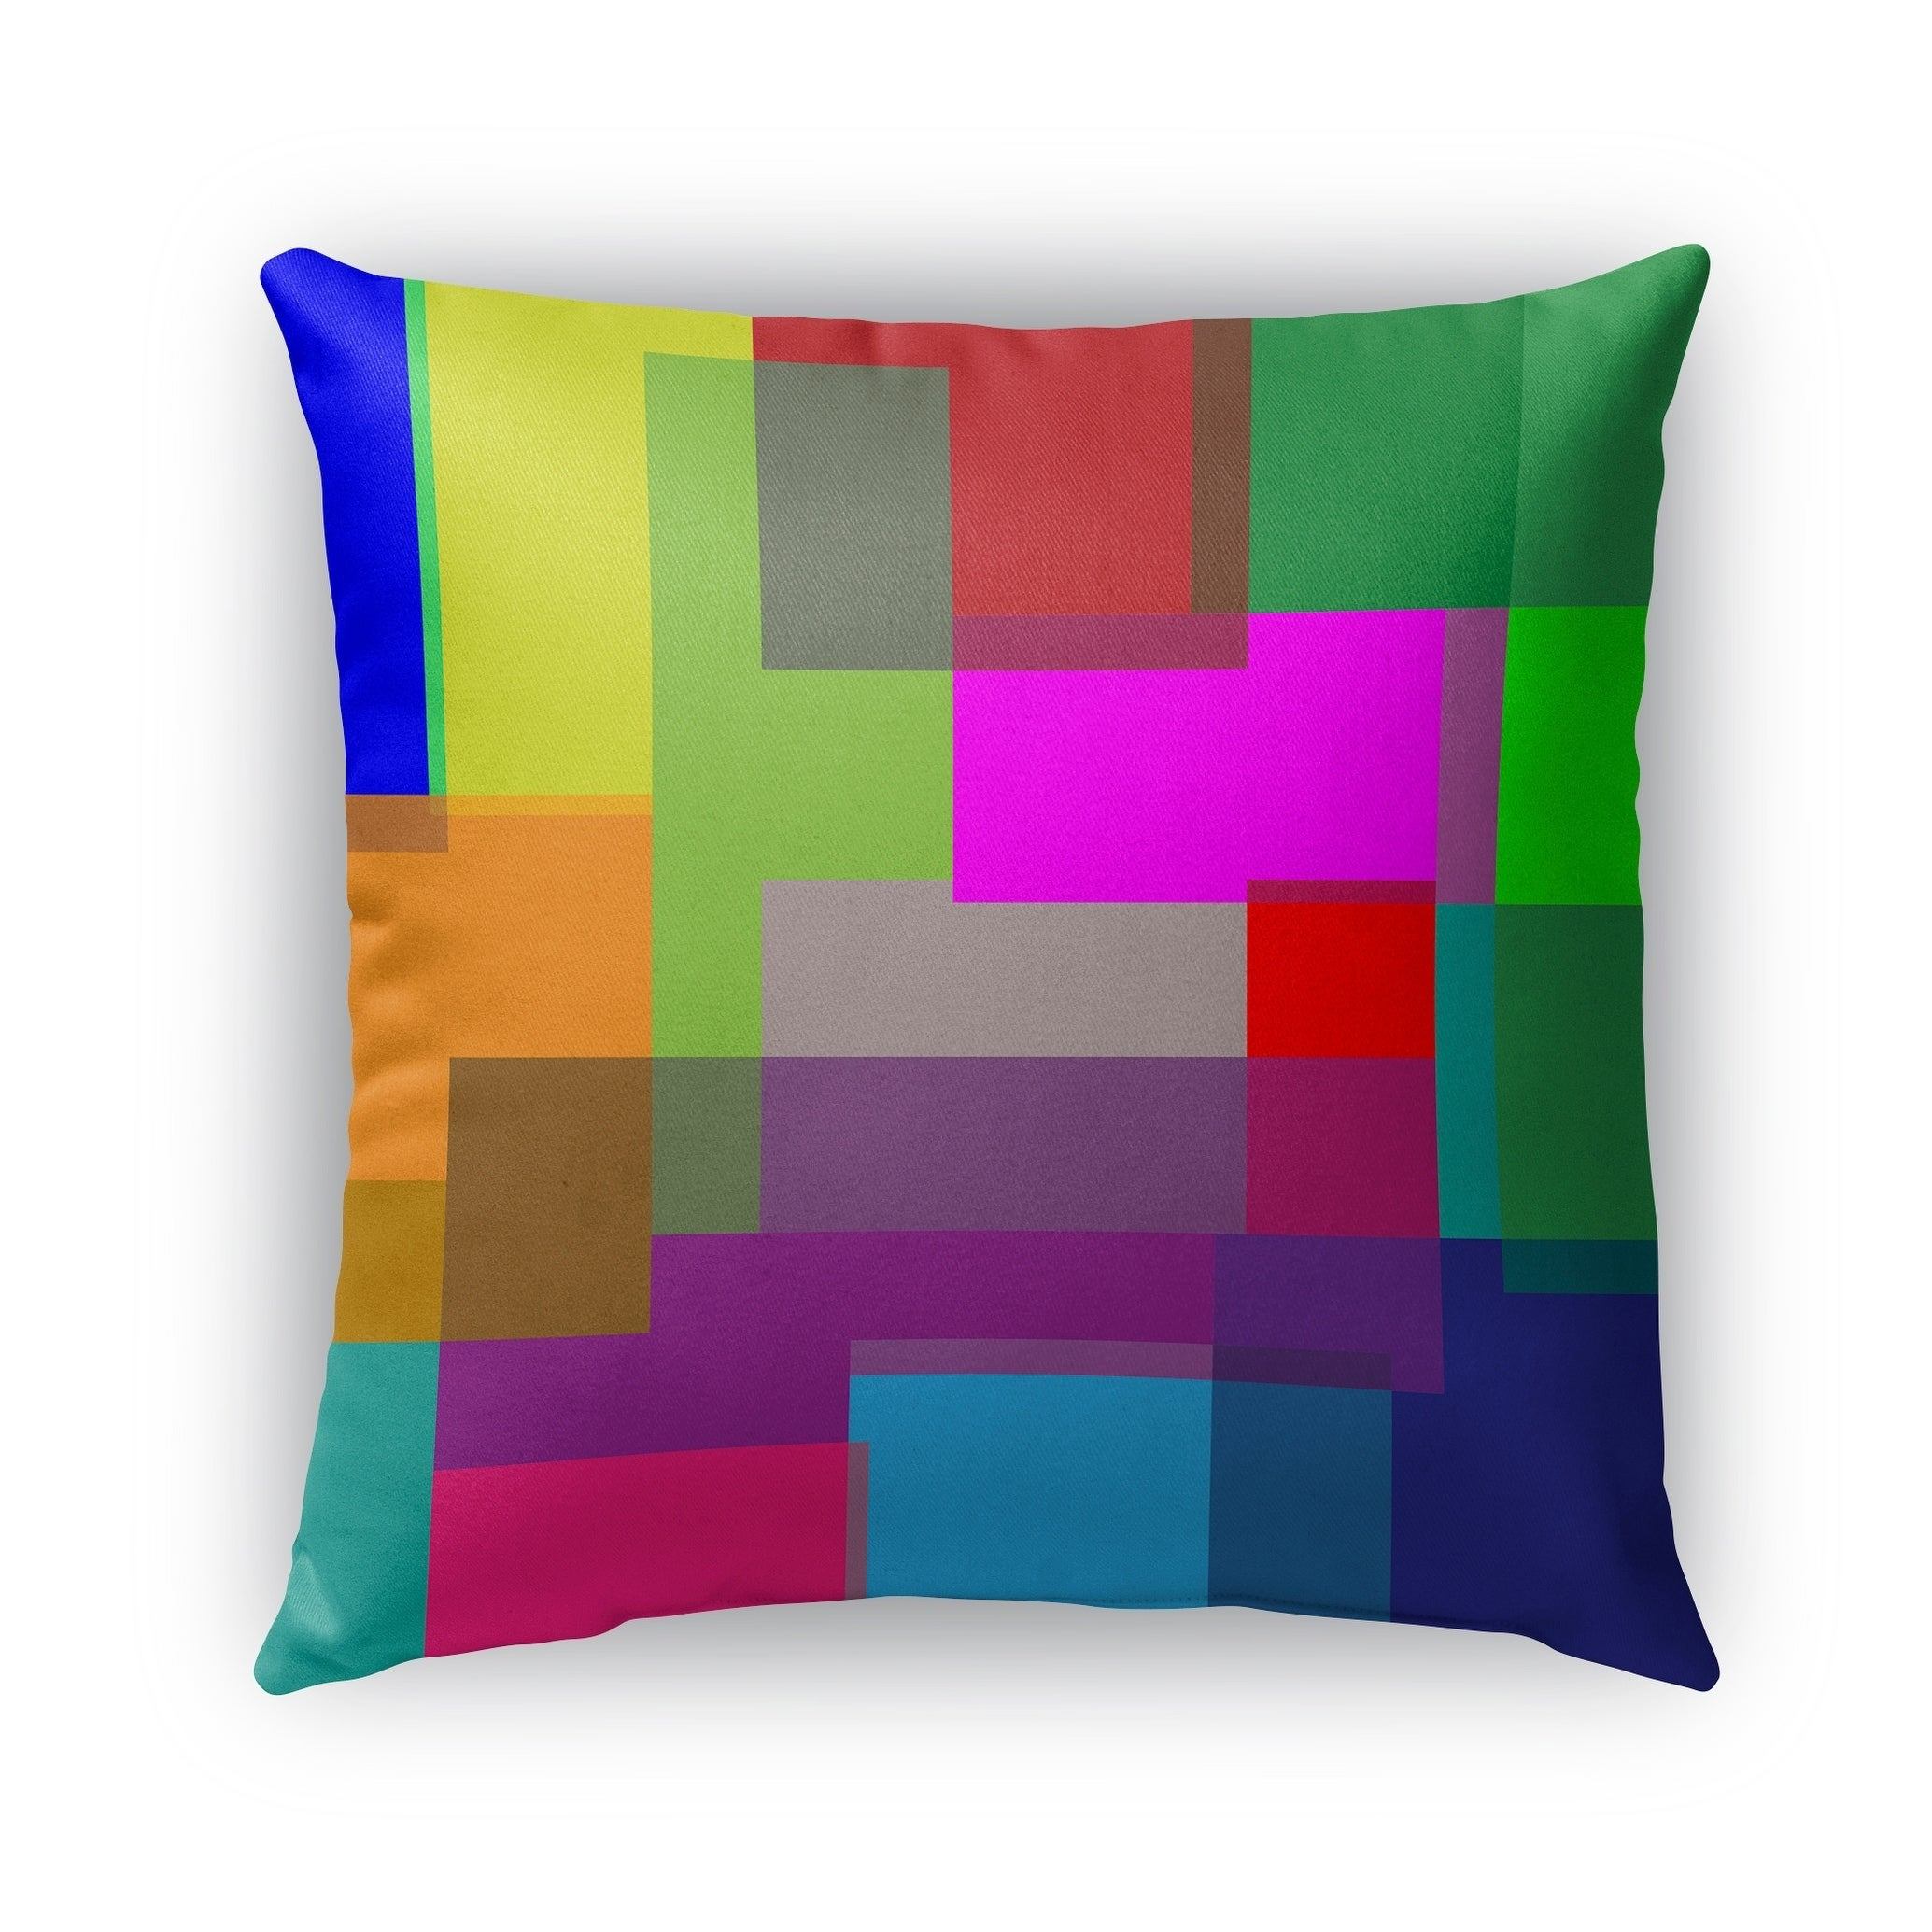 Kavka Designs blue; pink; peach; orange; green; red color theory blocks outdoor pillow with insert (16 x 16)